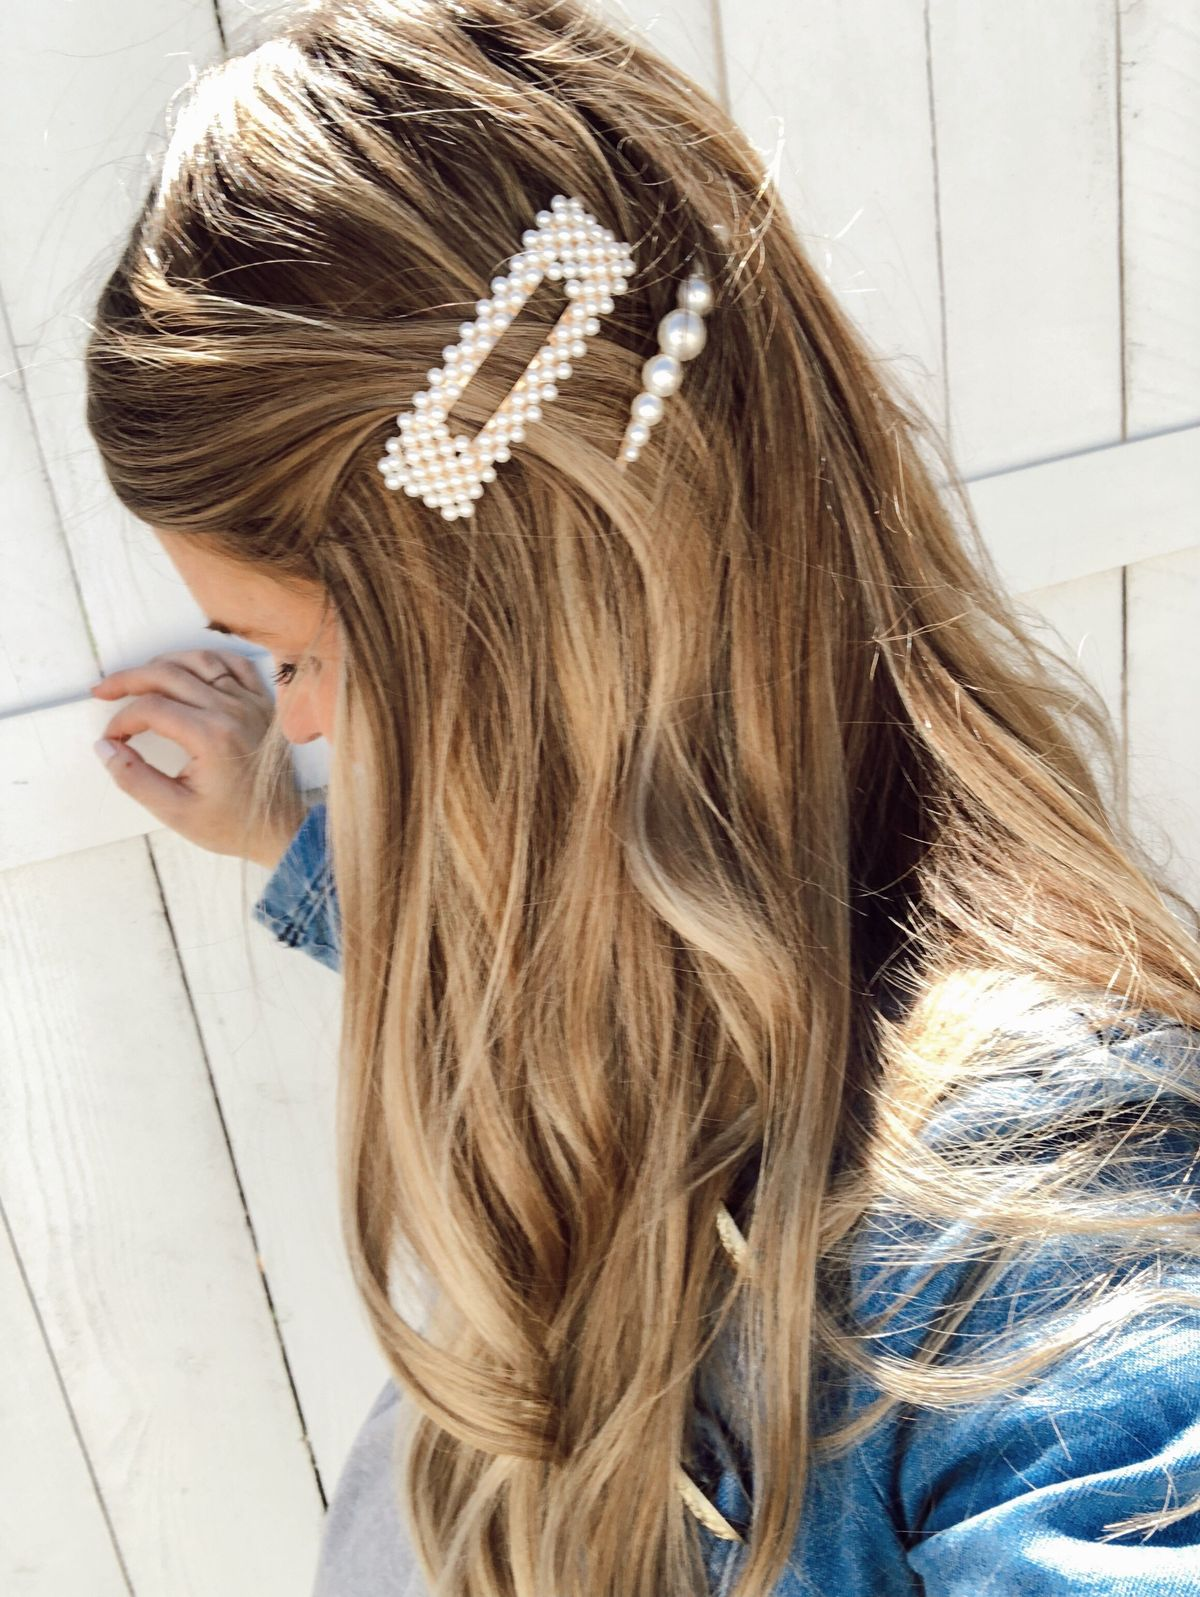 Trend Report: Hair Clips & Barrettes